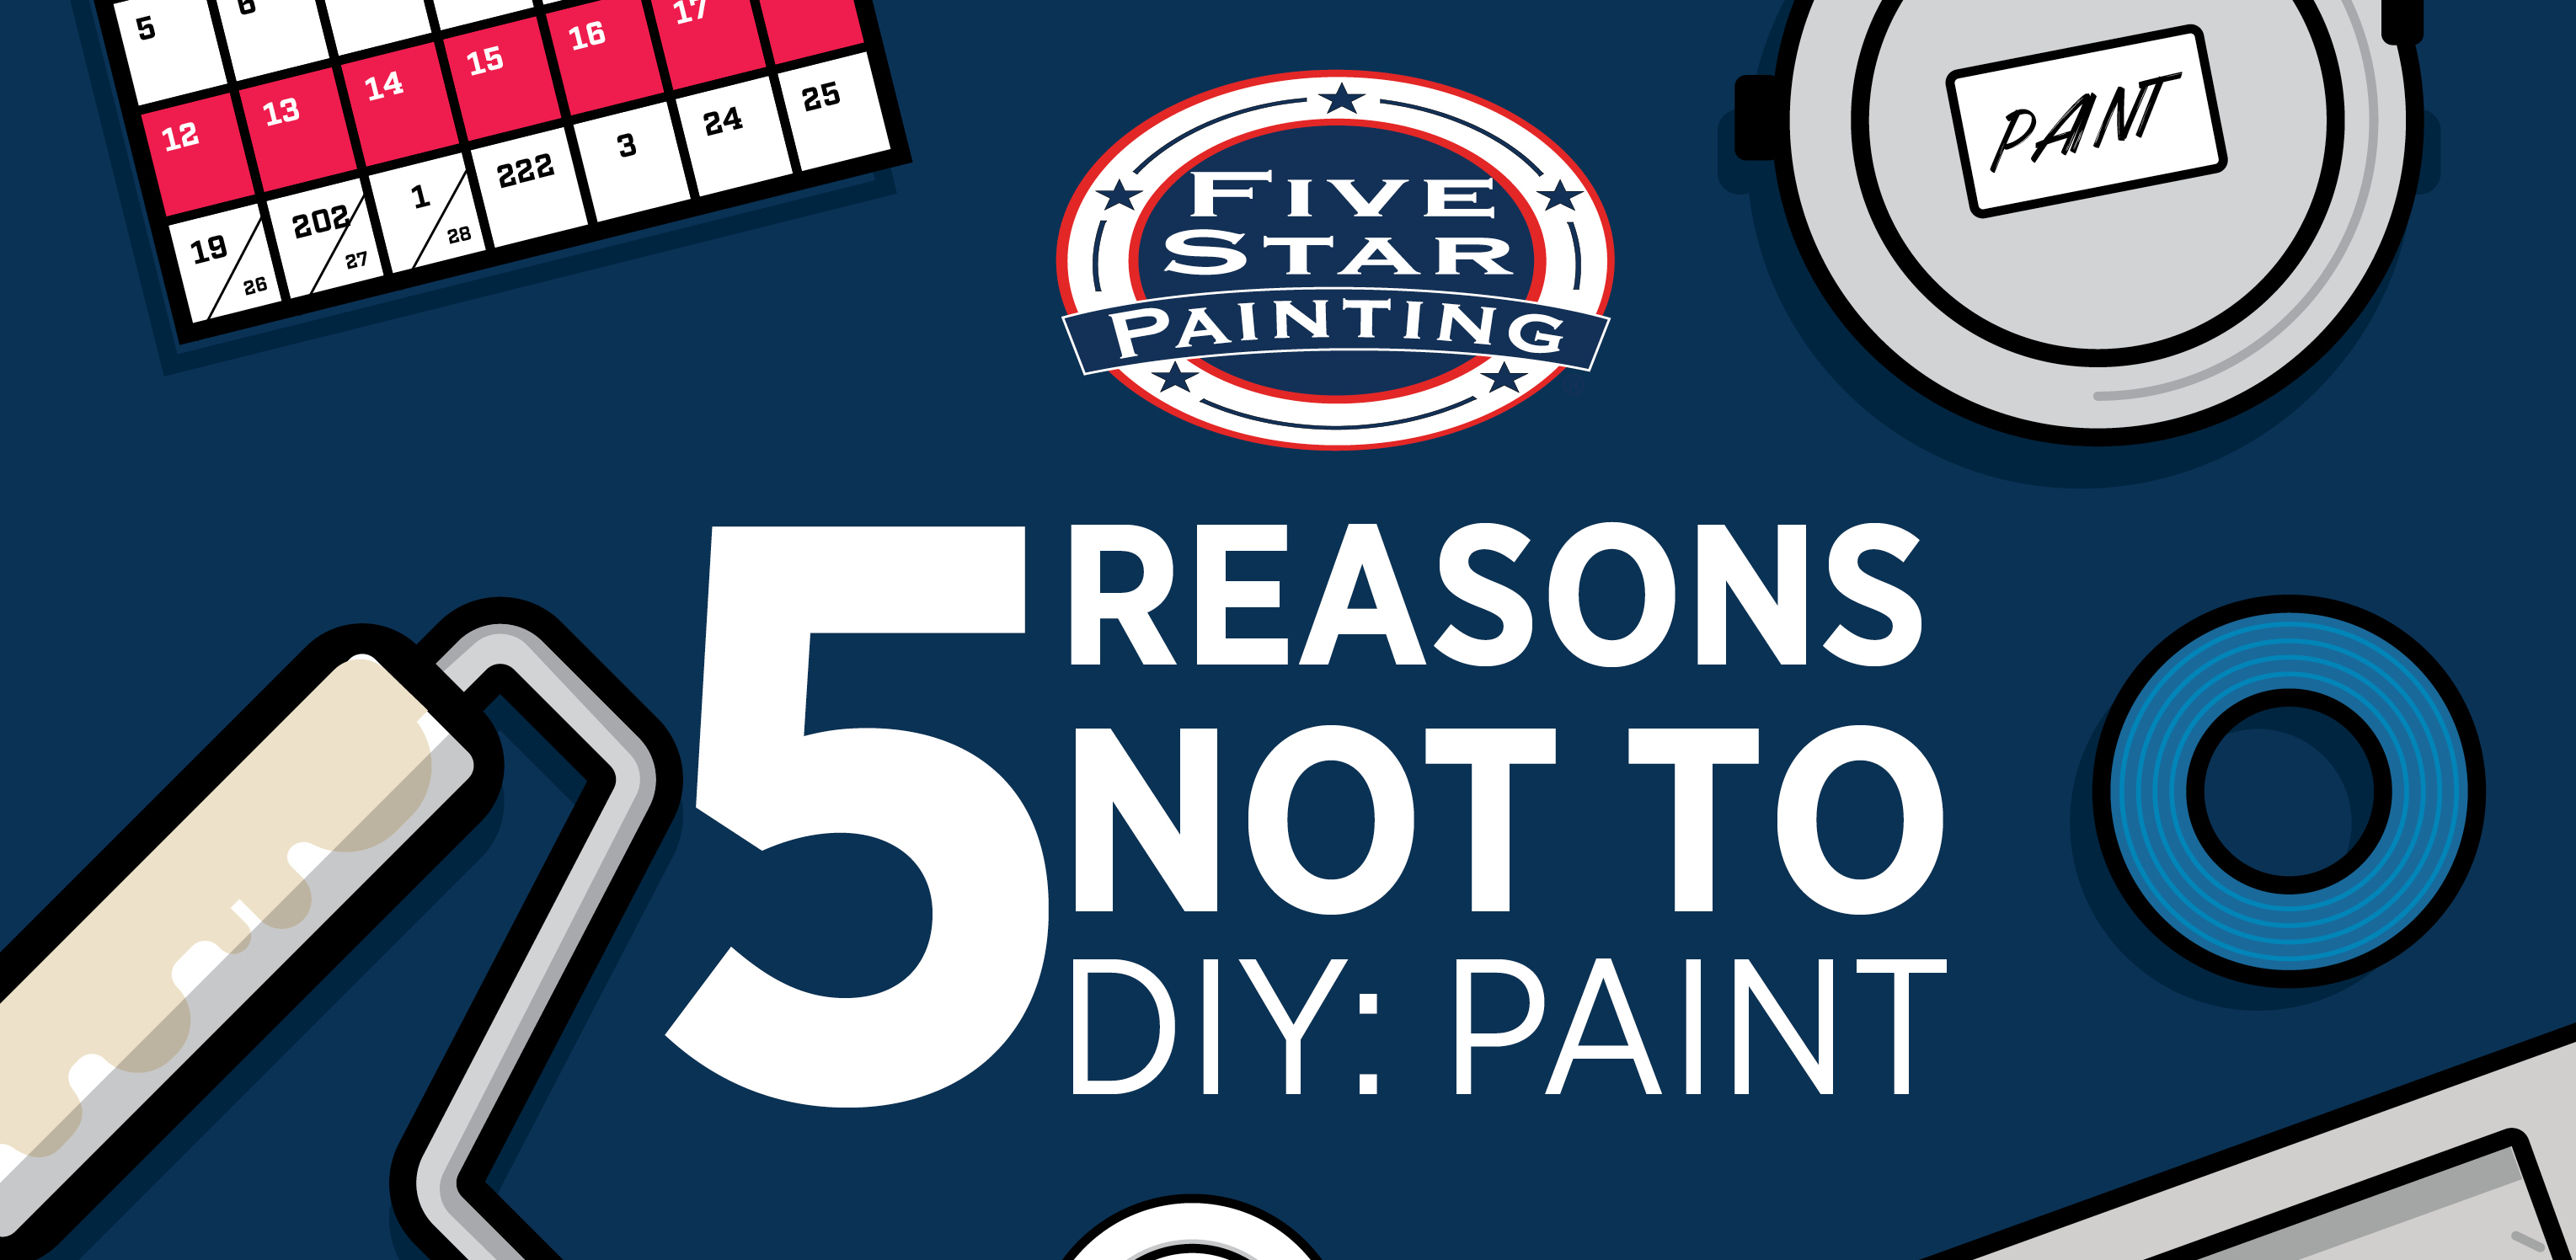 5 Reasons Not to DIY Paint